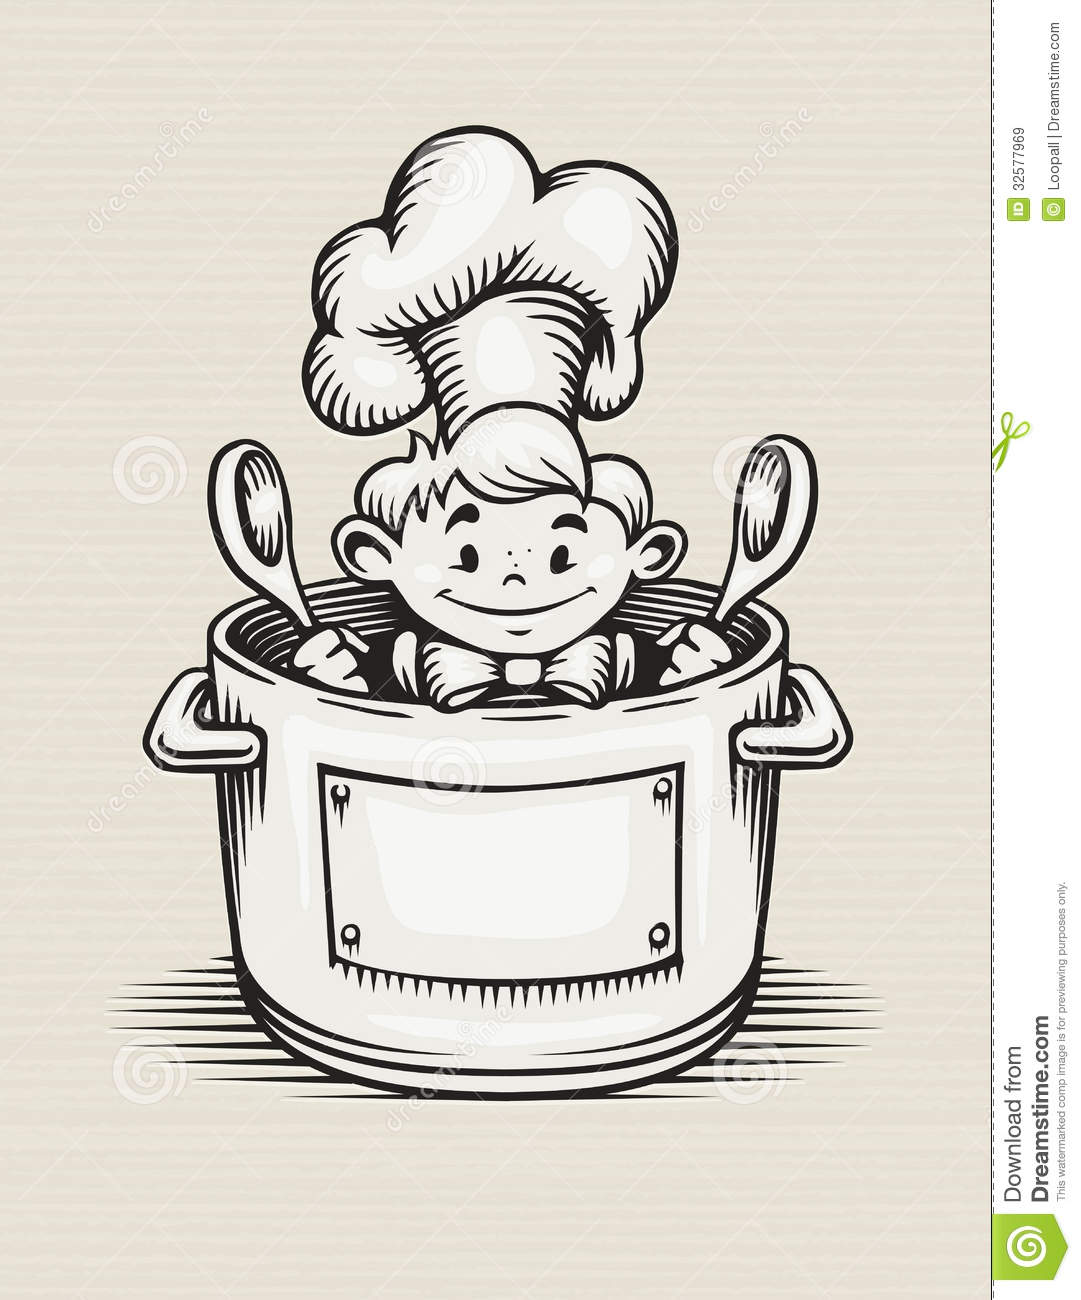 Bilder Küche Clipart Smiling Boy Cooking In The Kitchen Royalty Free Stock